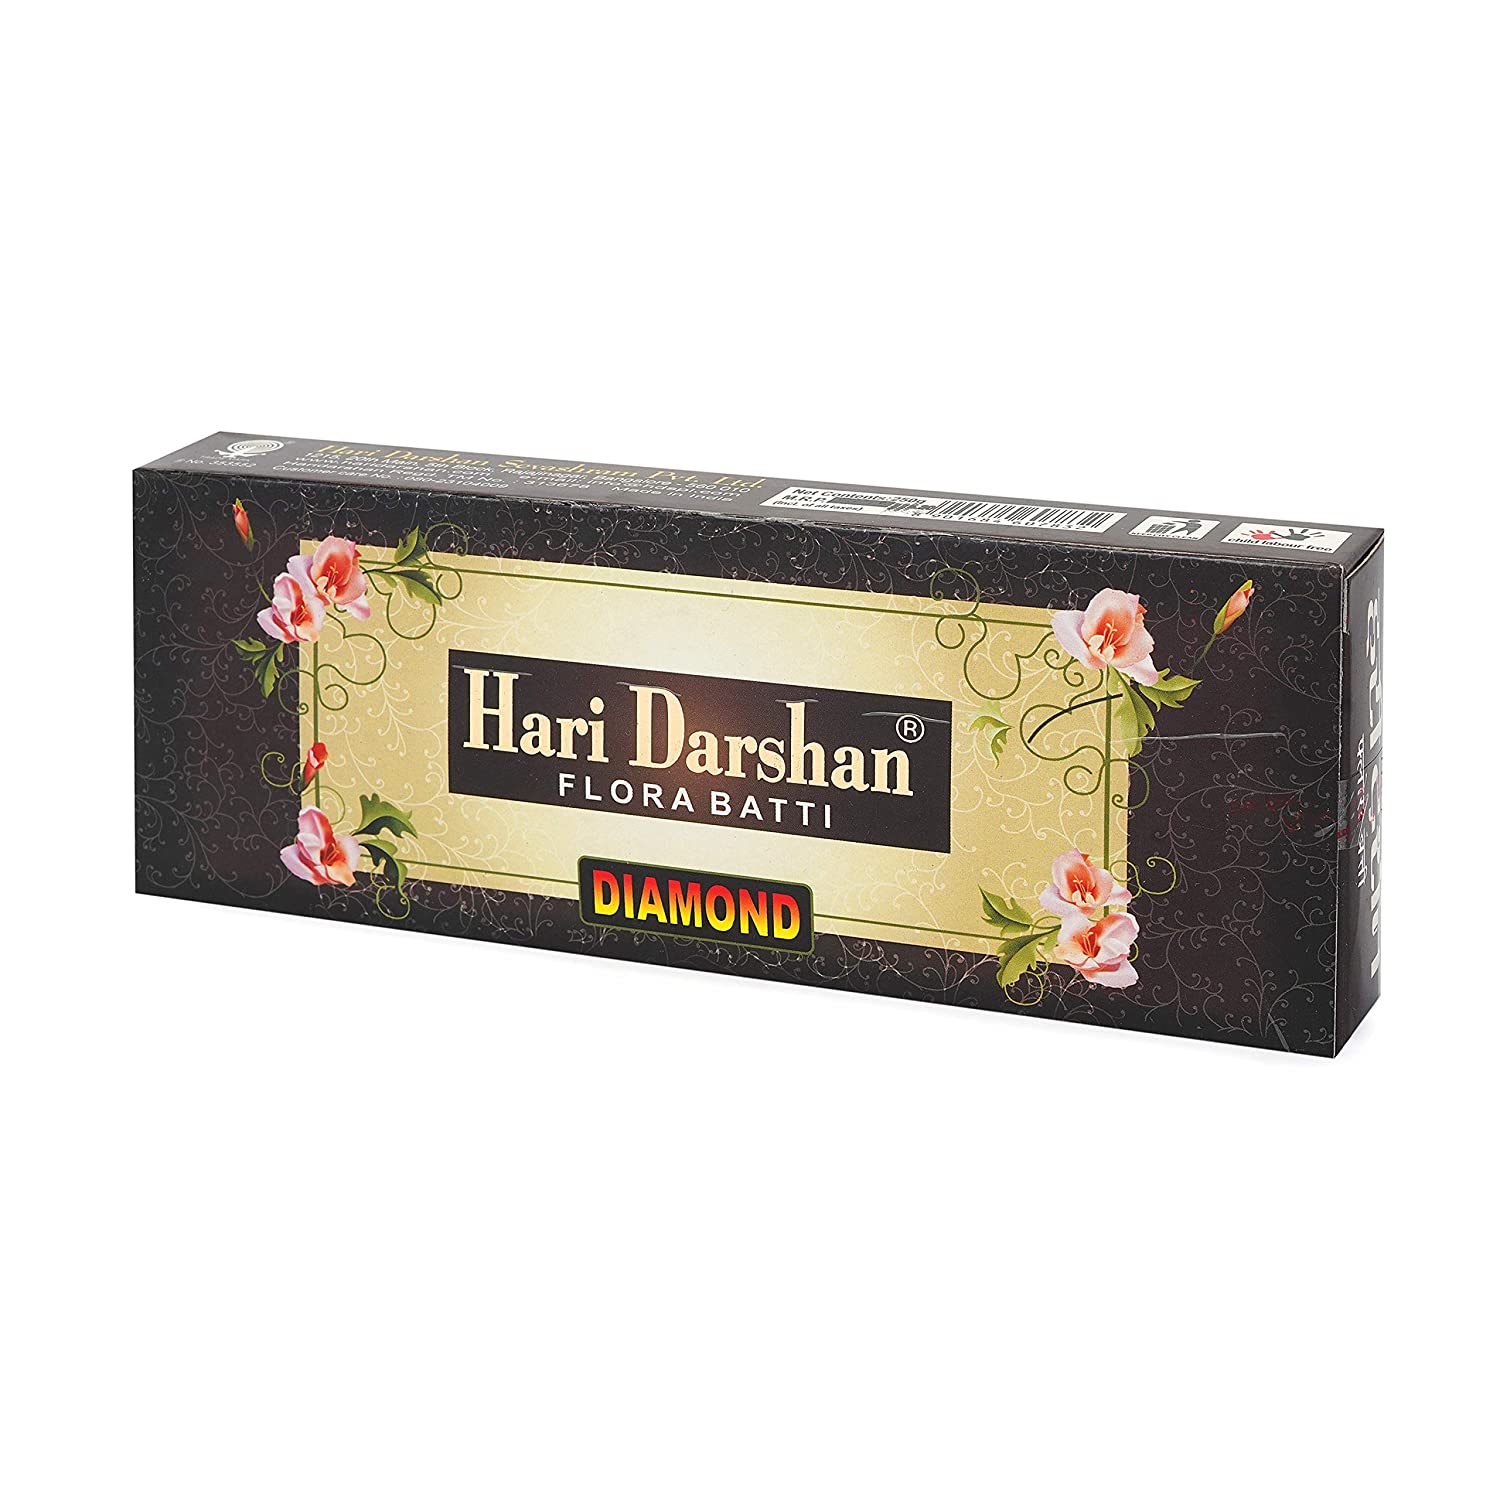 Details about  /3 X Hari Darshan Collections Flora Mix Incense Sticks Pack Of 150 Sticks 250 gm